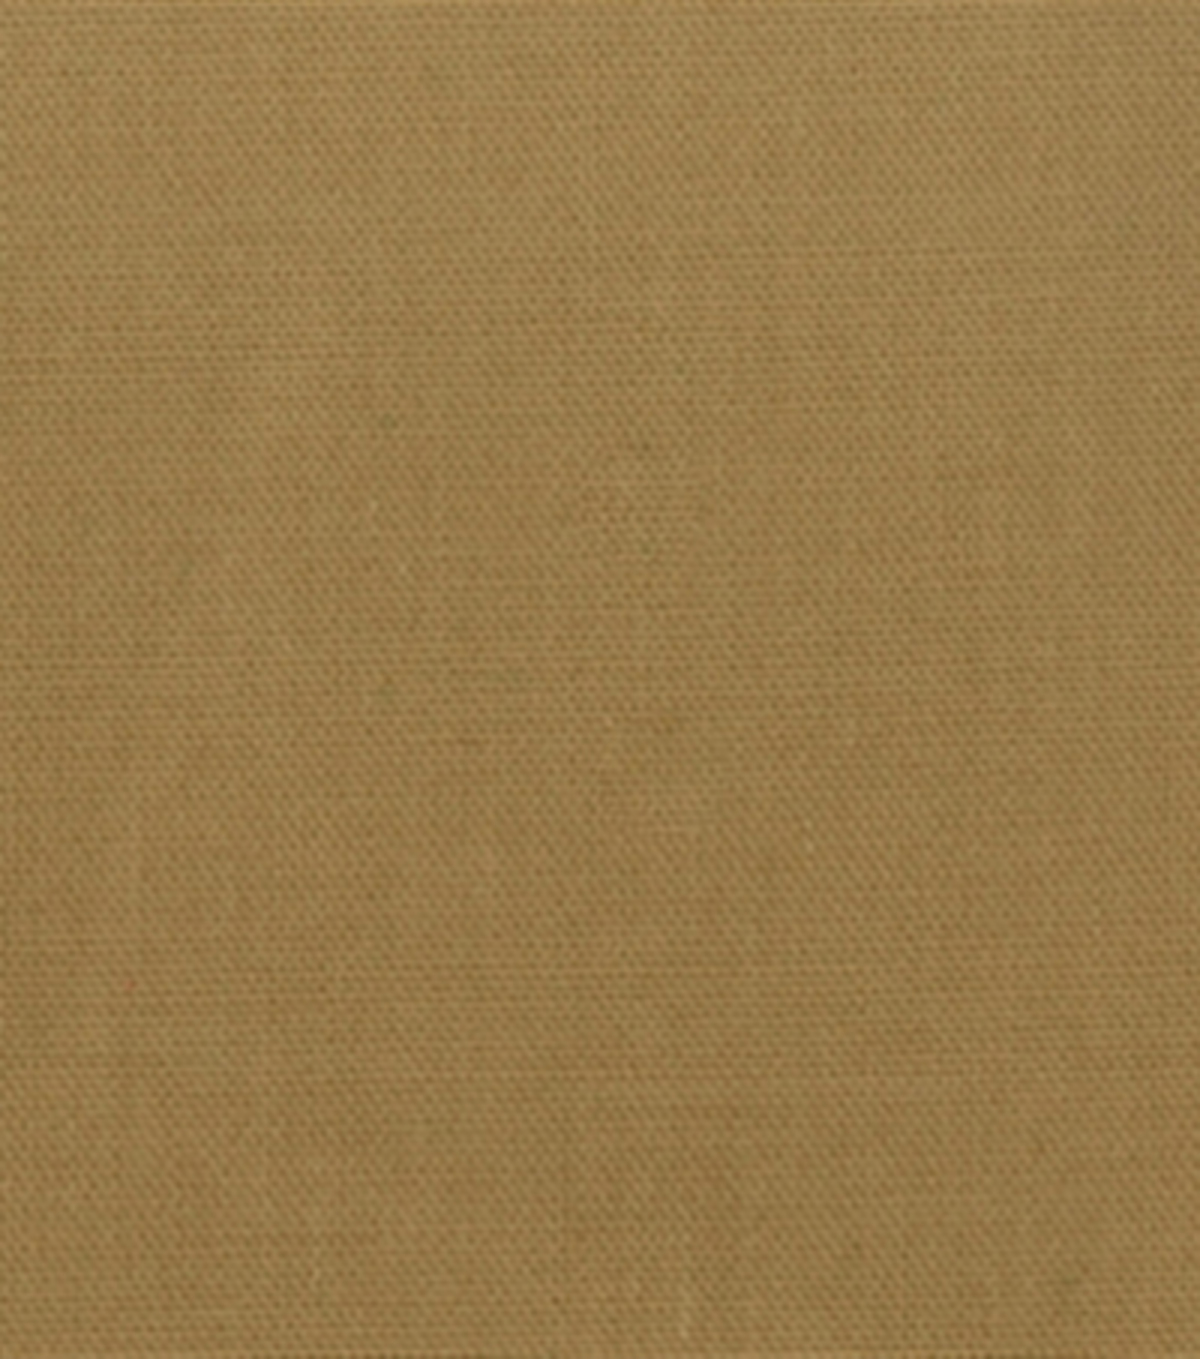 Home Decor 8\u0022x8\u0022 Fabric Swatch-Covington Spinnaker 102 Sand